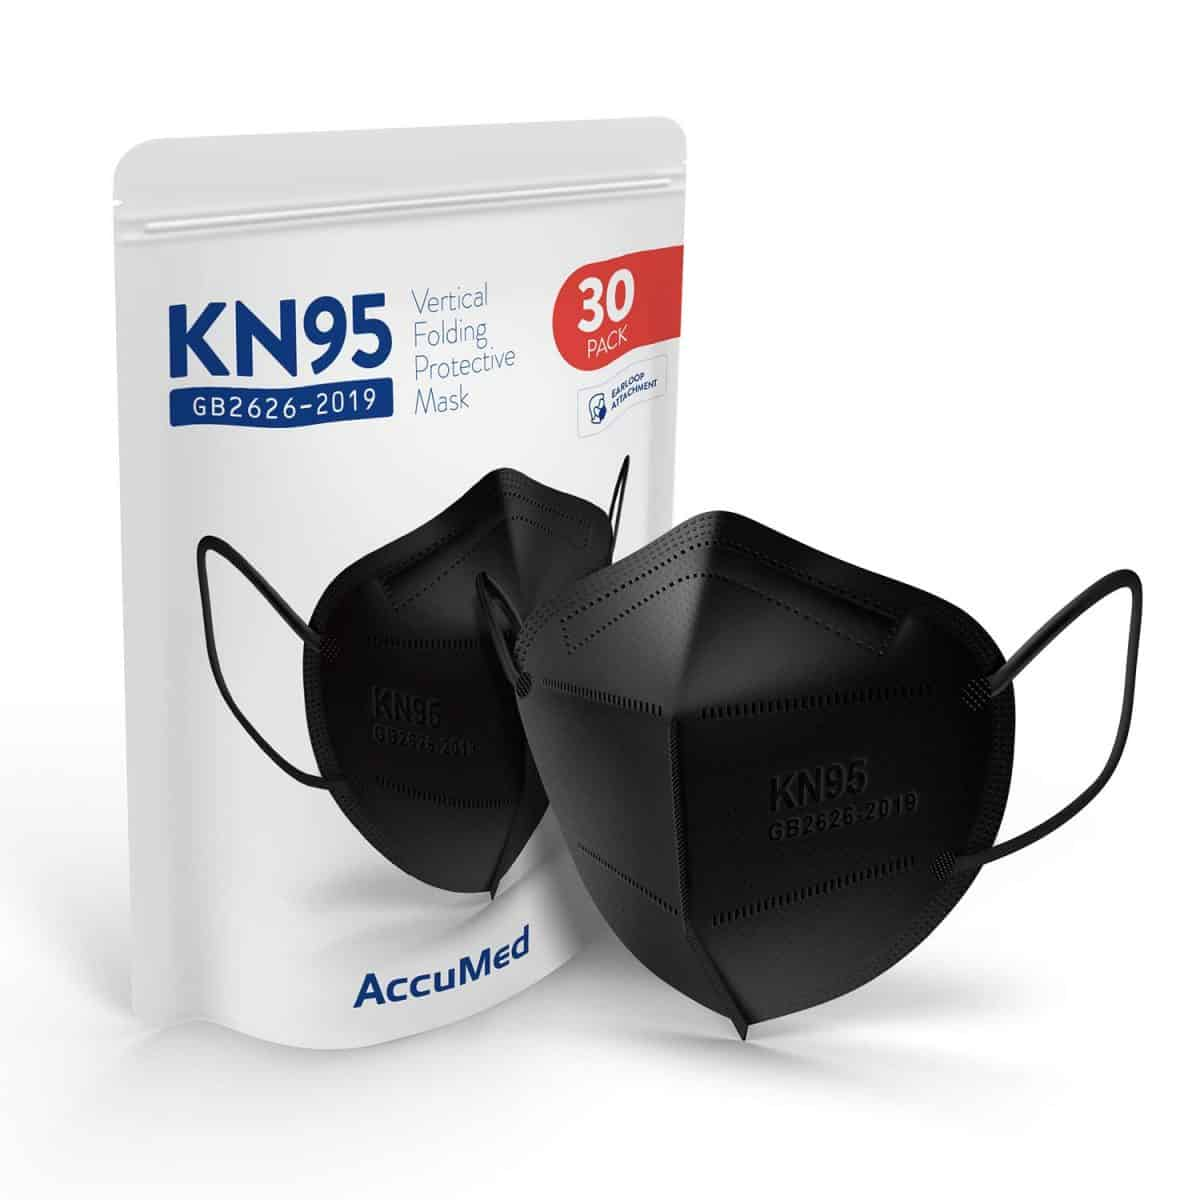 AccuMed KN95 face mask